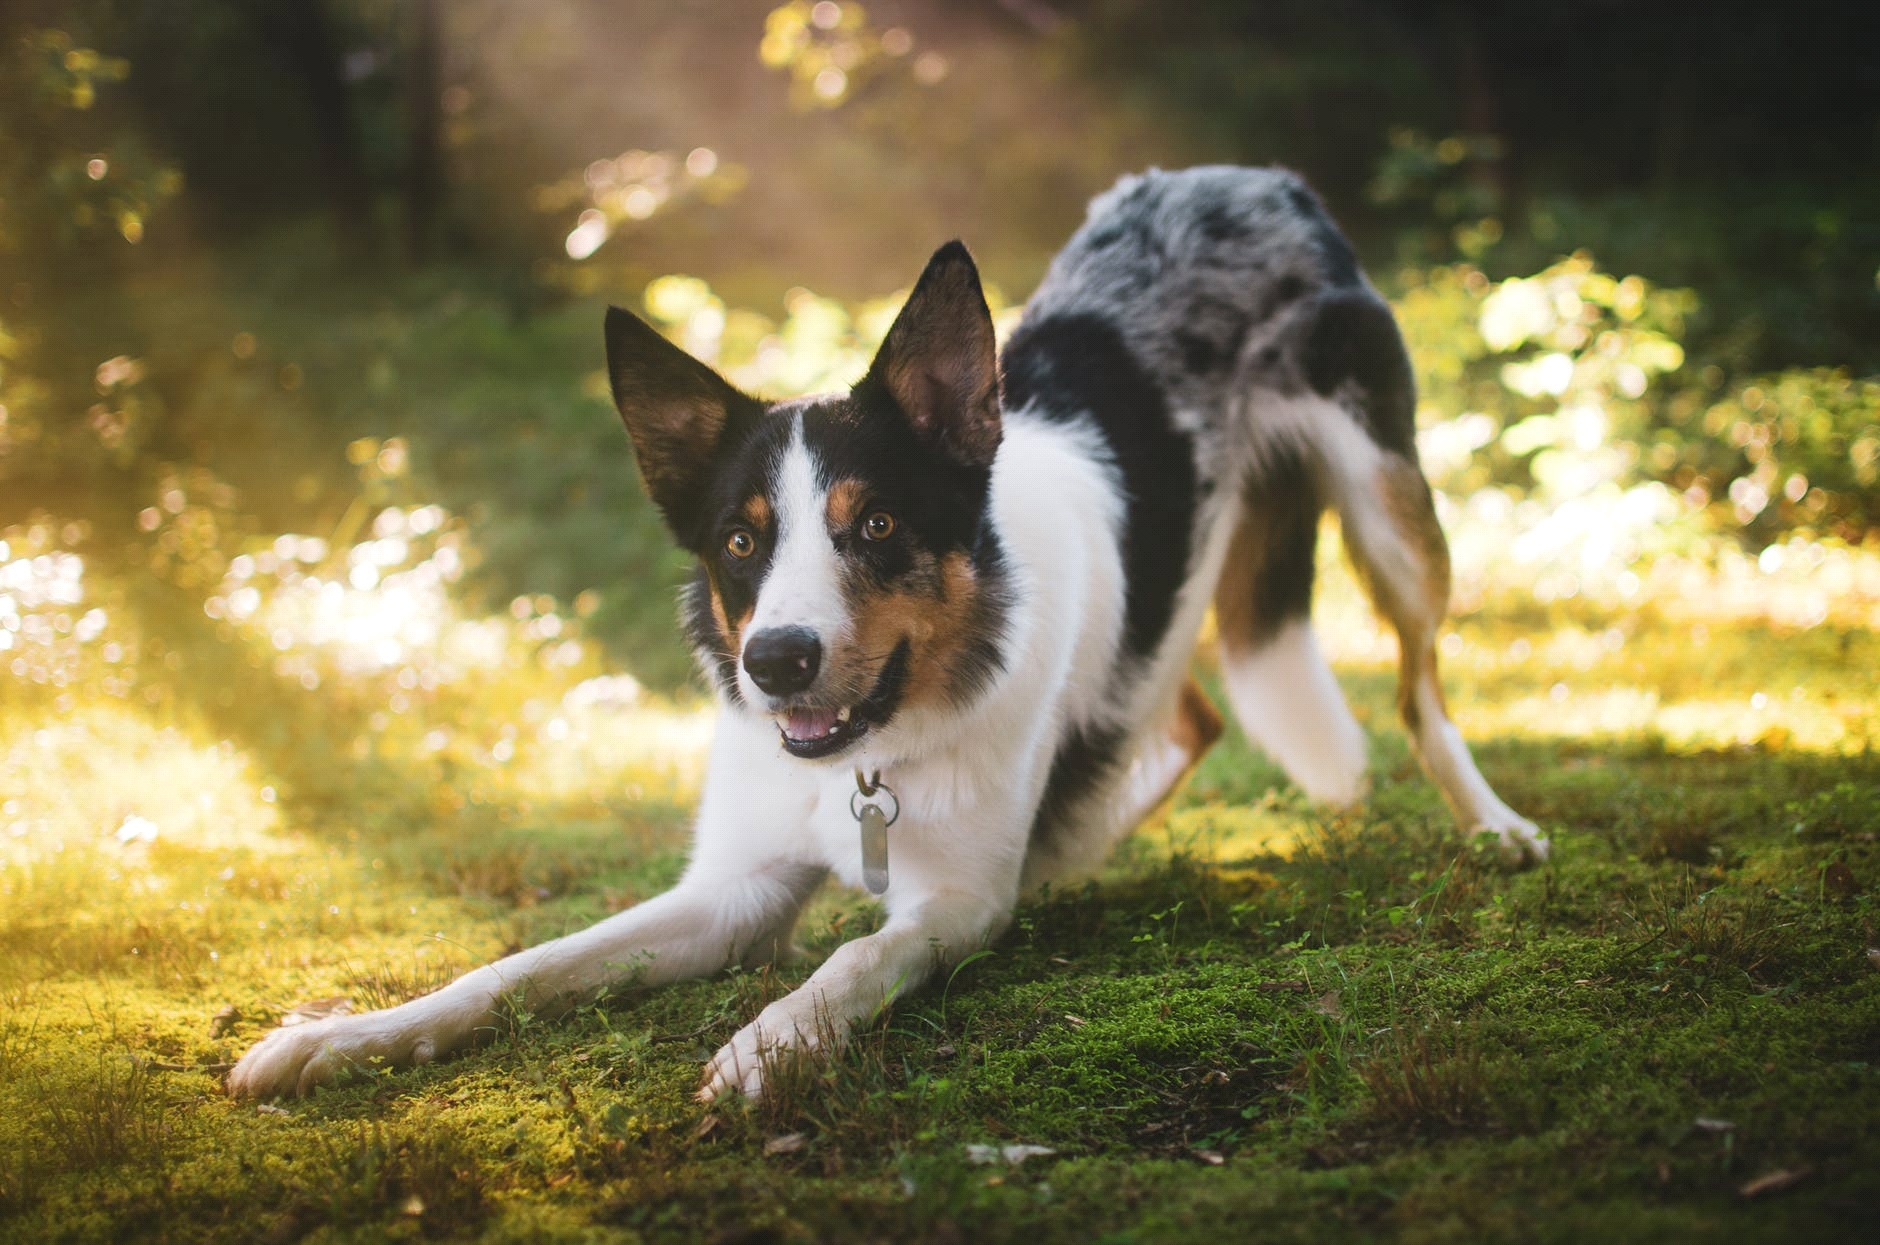 BREEDS OF BEST GUARD DOGS